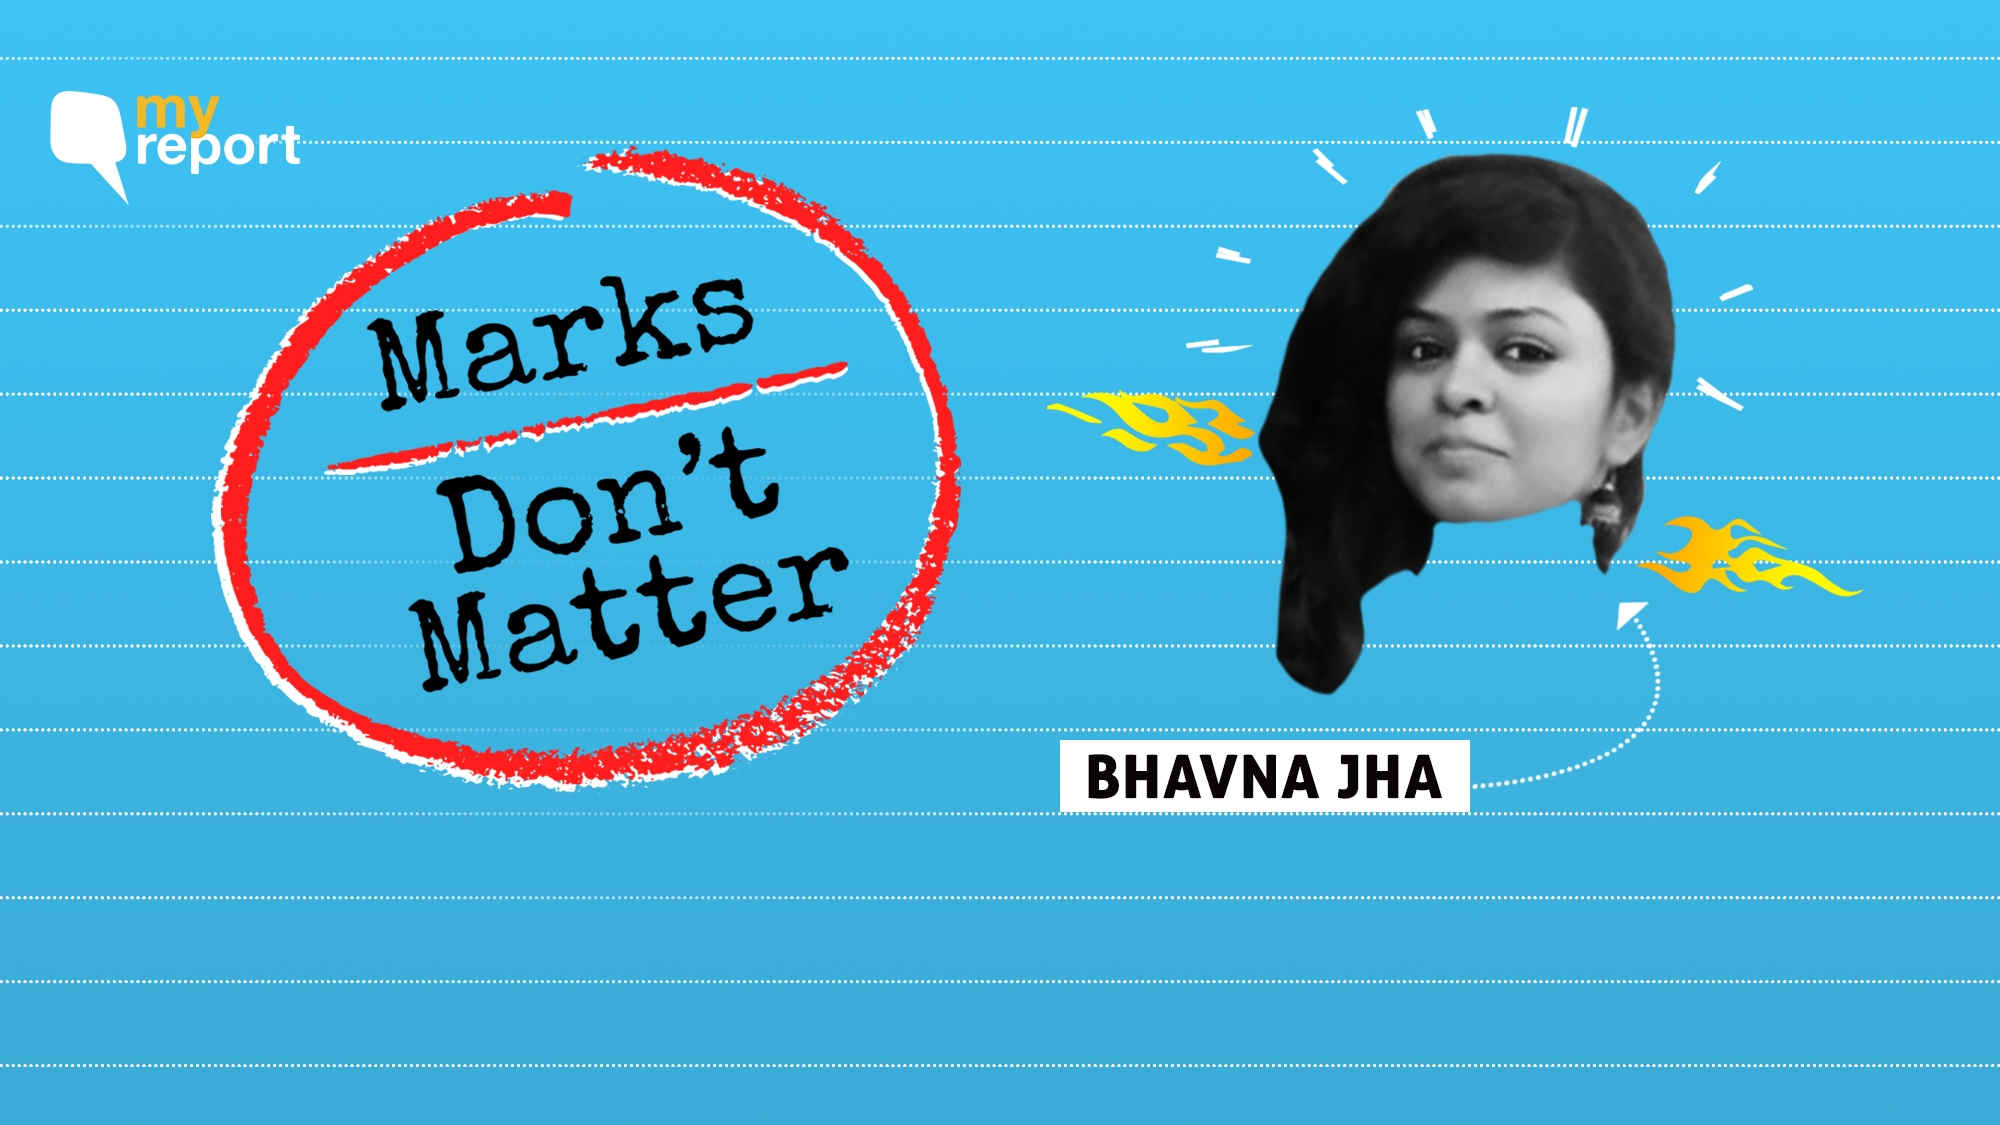 Marks Don't Matter: Let's Enjoy Learning & Not Hype Board Exams